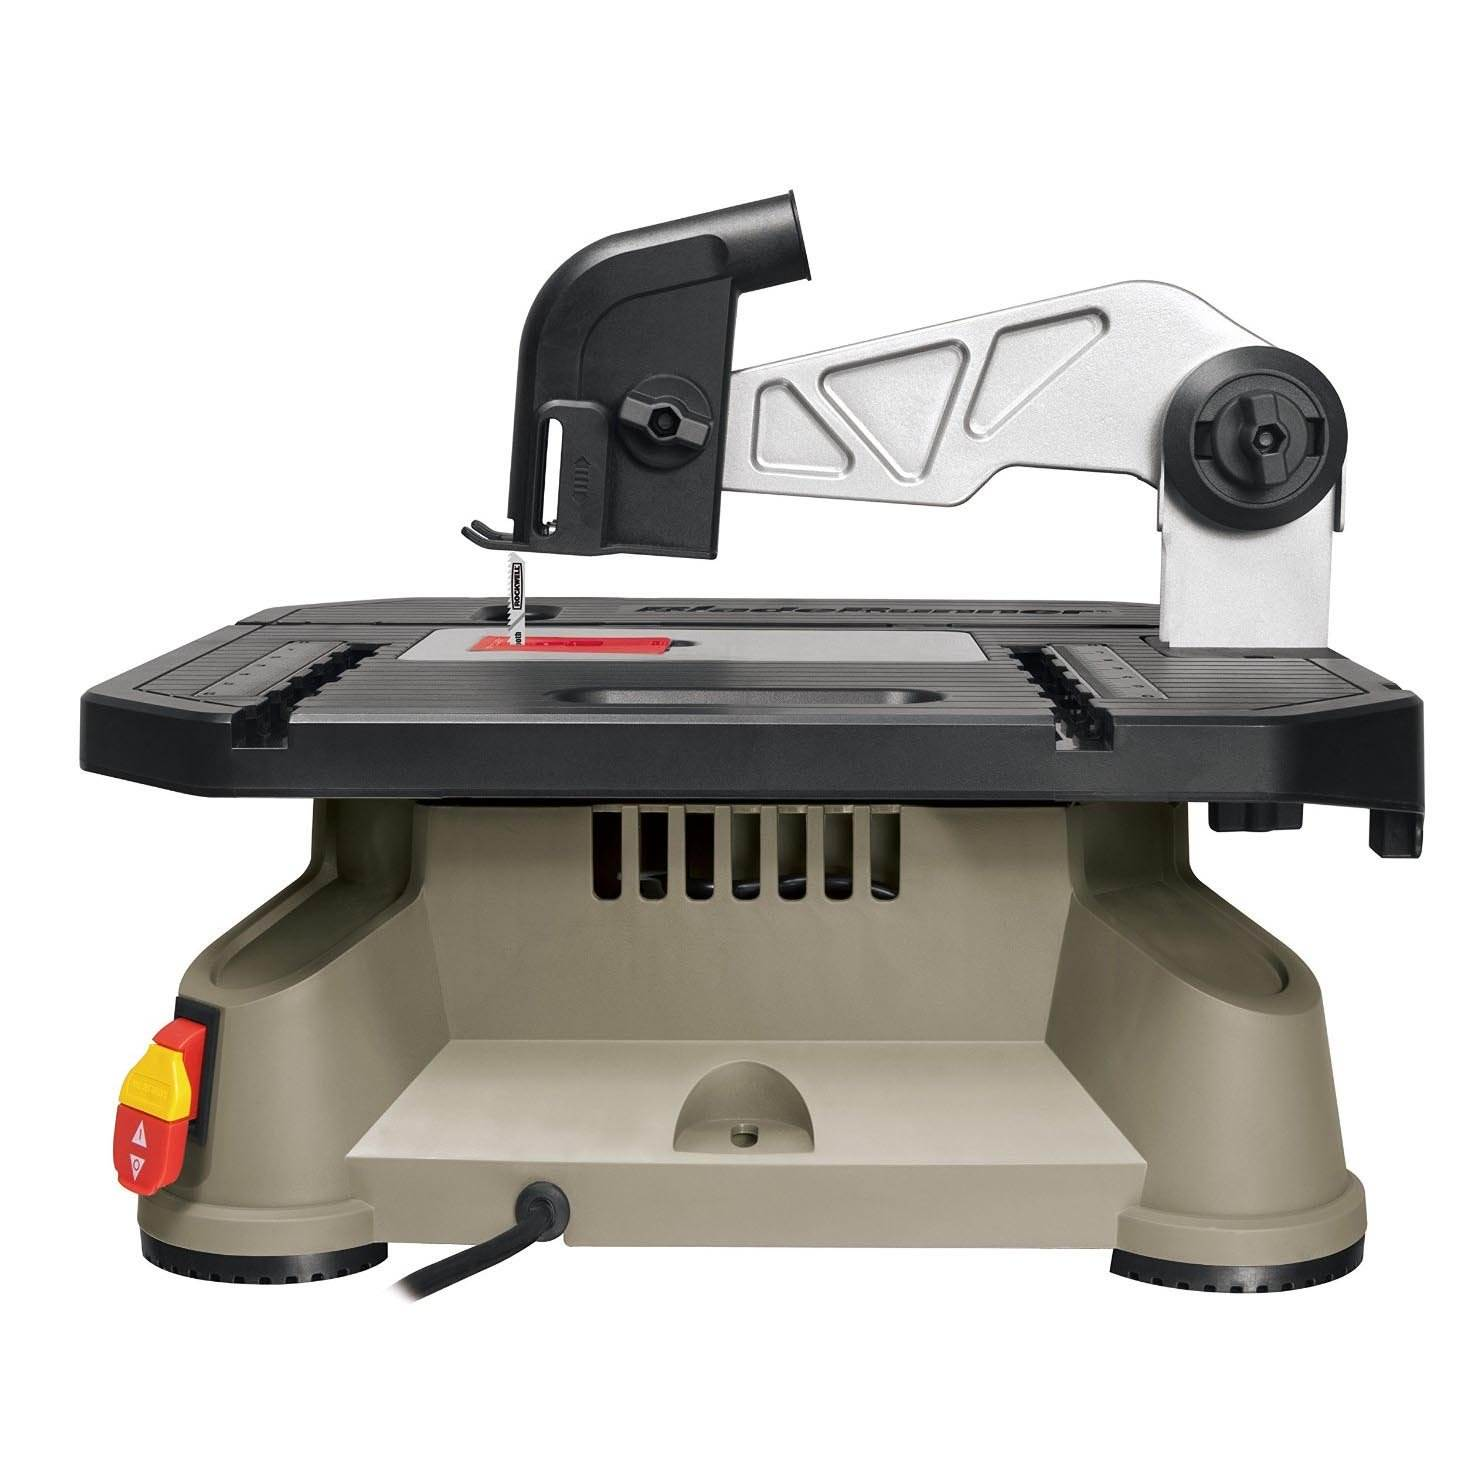 Table Saw Rockwell BladeRunner X2 Portable Tabletop Cutting Machine Rip Scroll